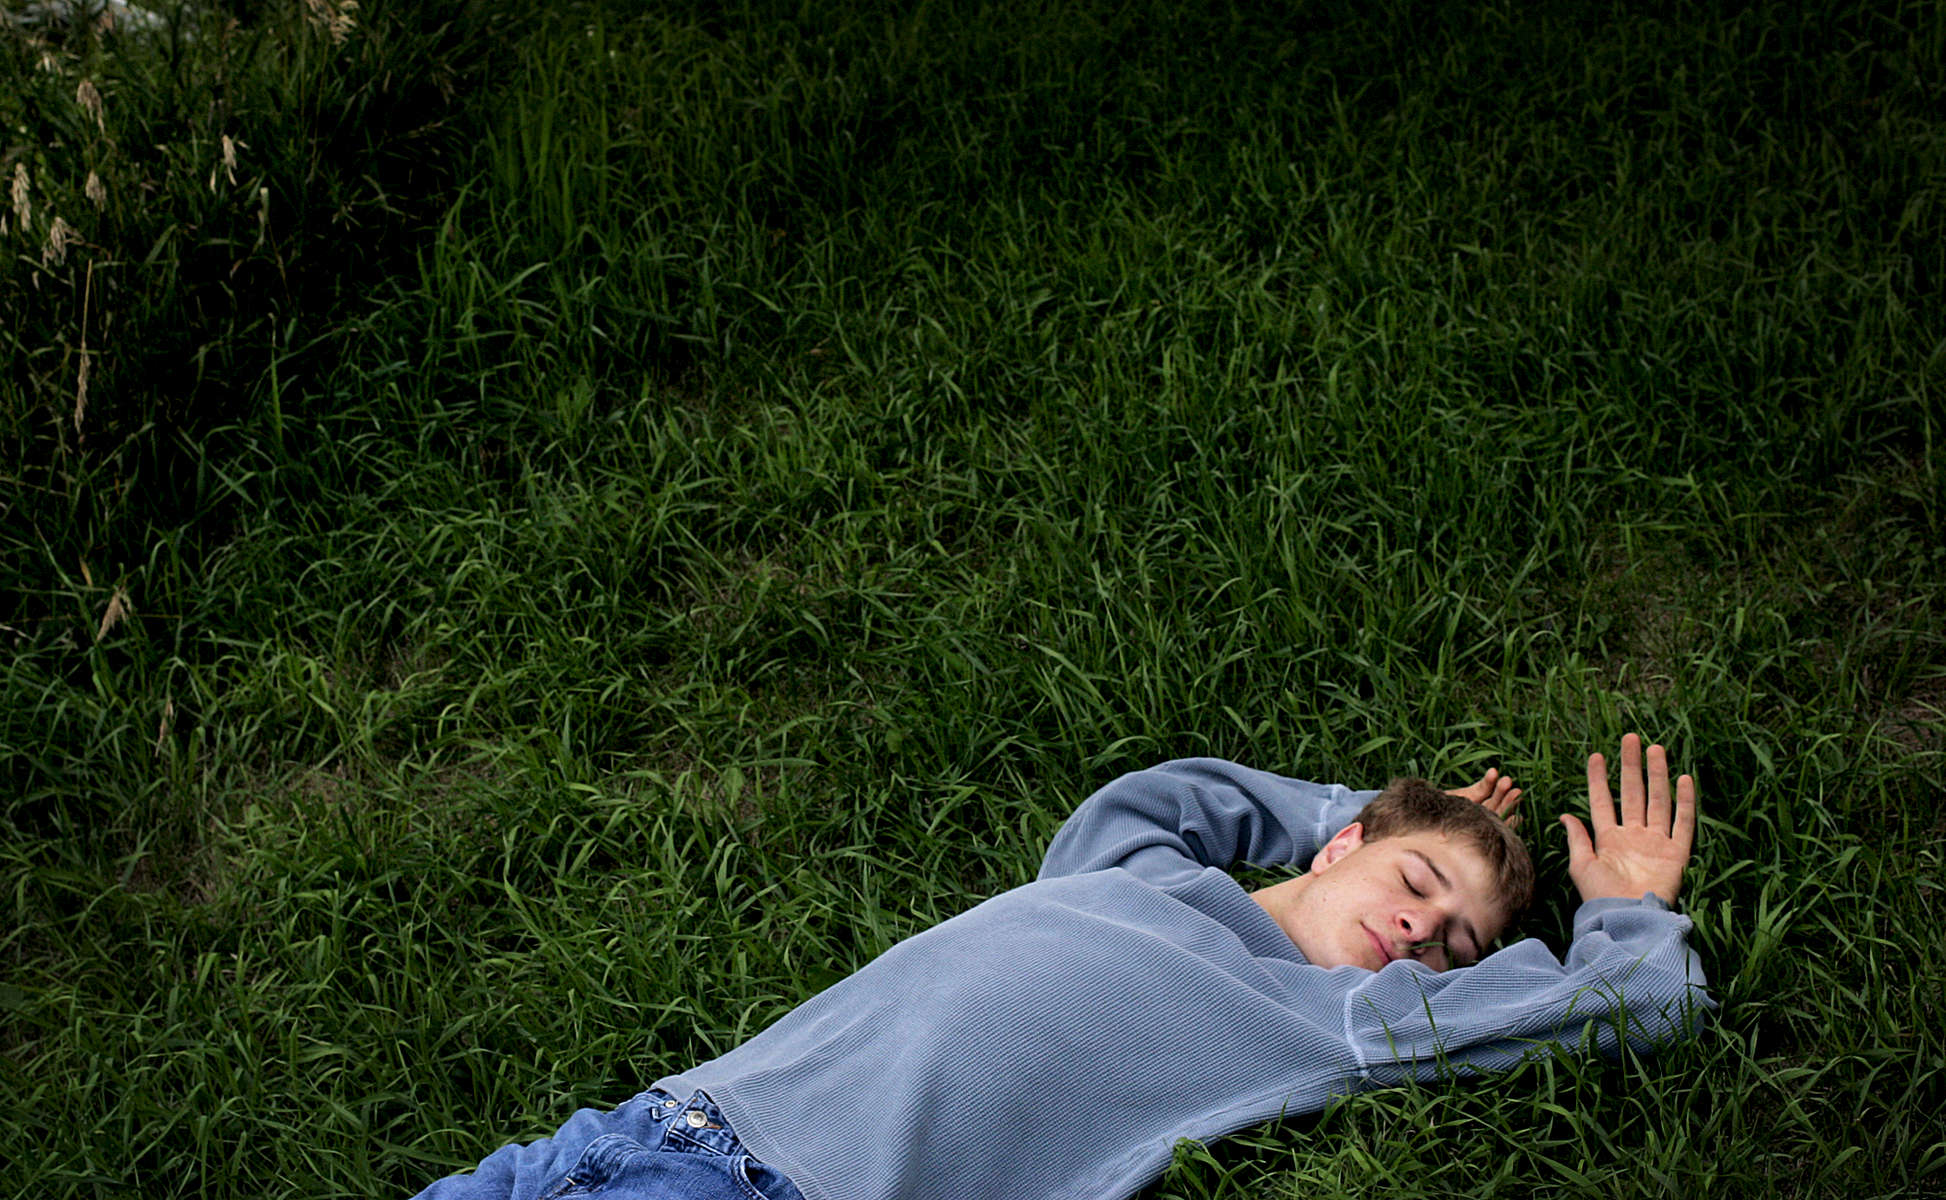 Stefan Kavan relaxes in the grass while waiting for a senior portrait photo session in New Prague, Minn. Kavan, who is autistic, is will be starting his senior year at New Prague High School where is involved in choir and the Knowledge Bowl team.